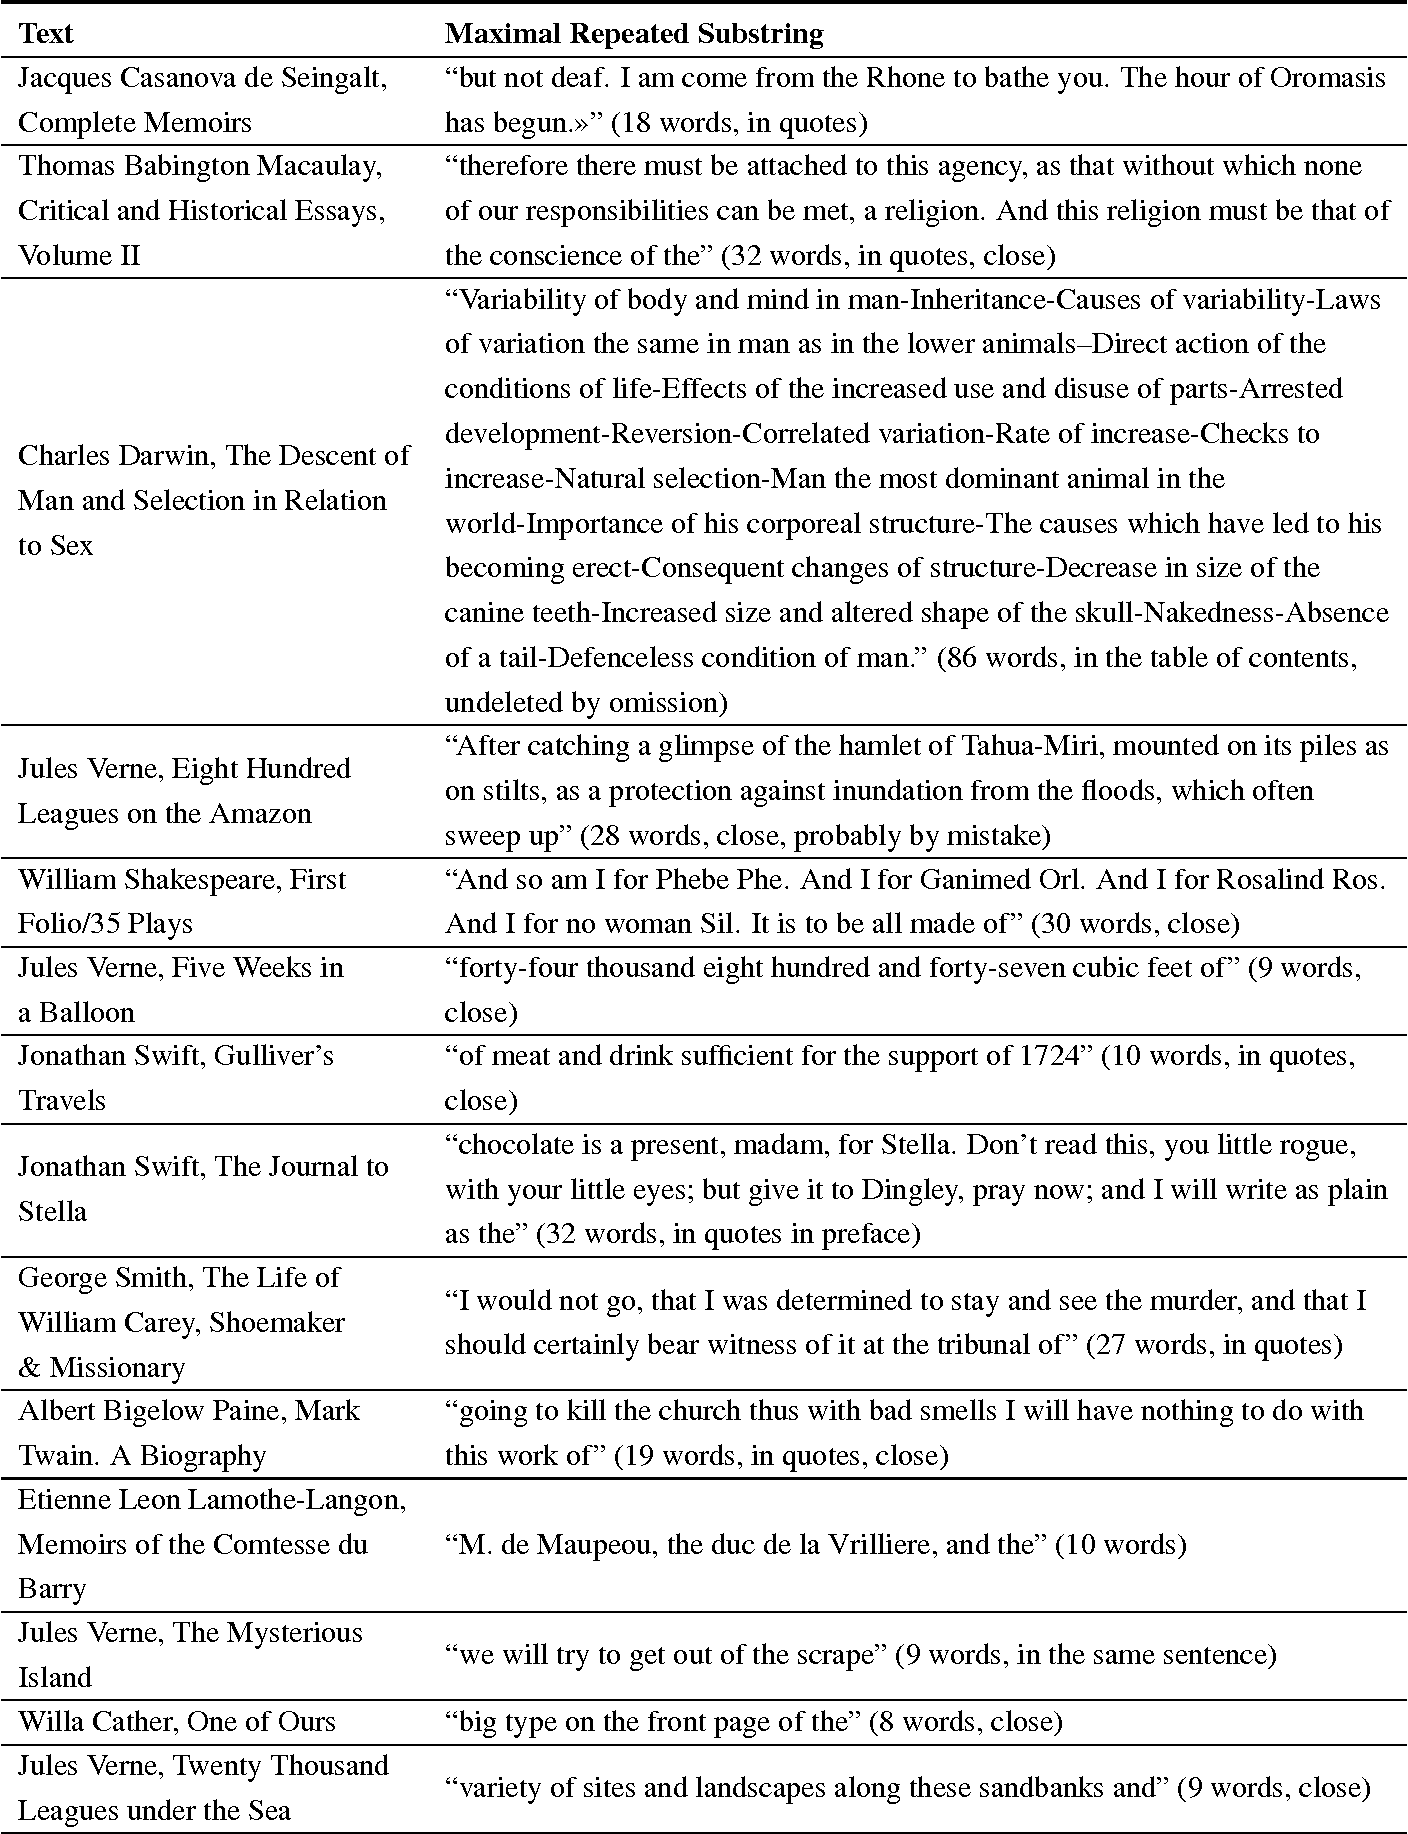 Table 3 from Maximal Repetitions in Written Texts: Finite